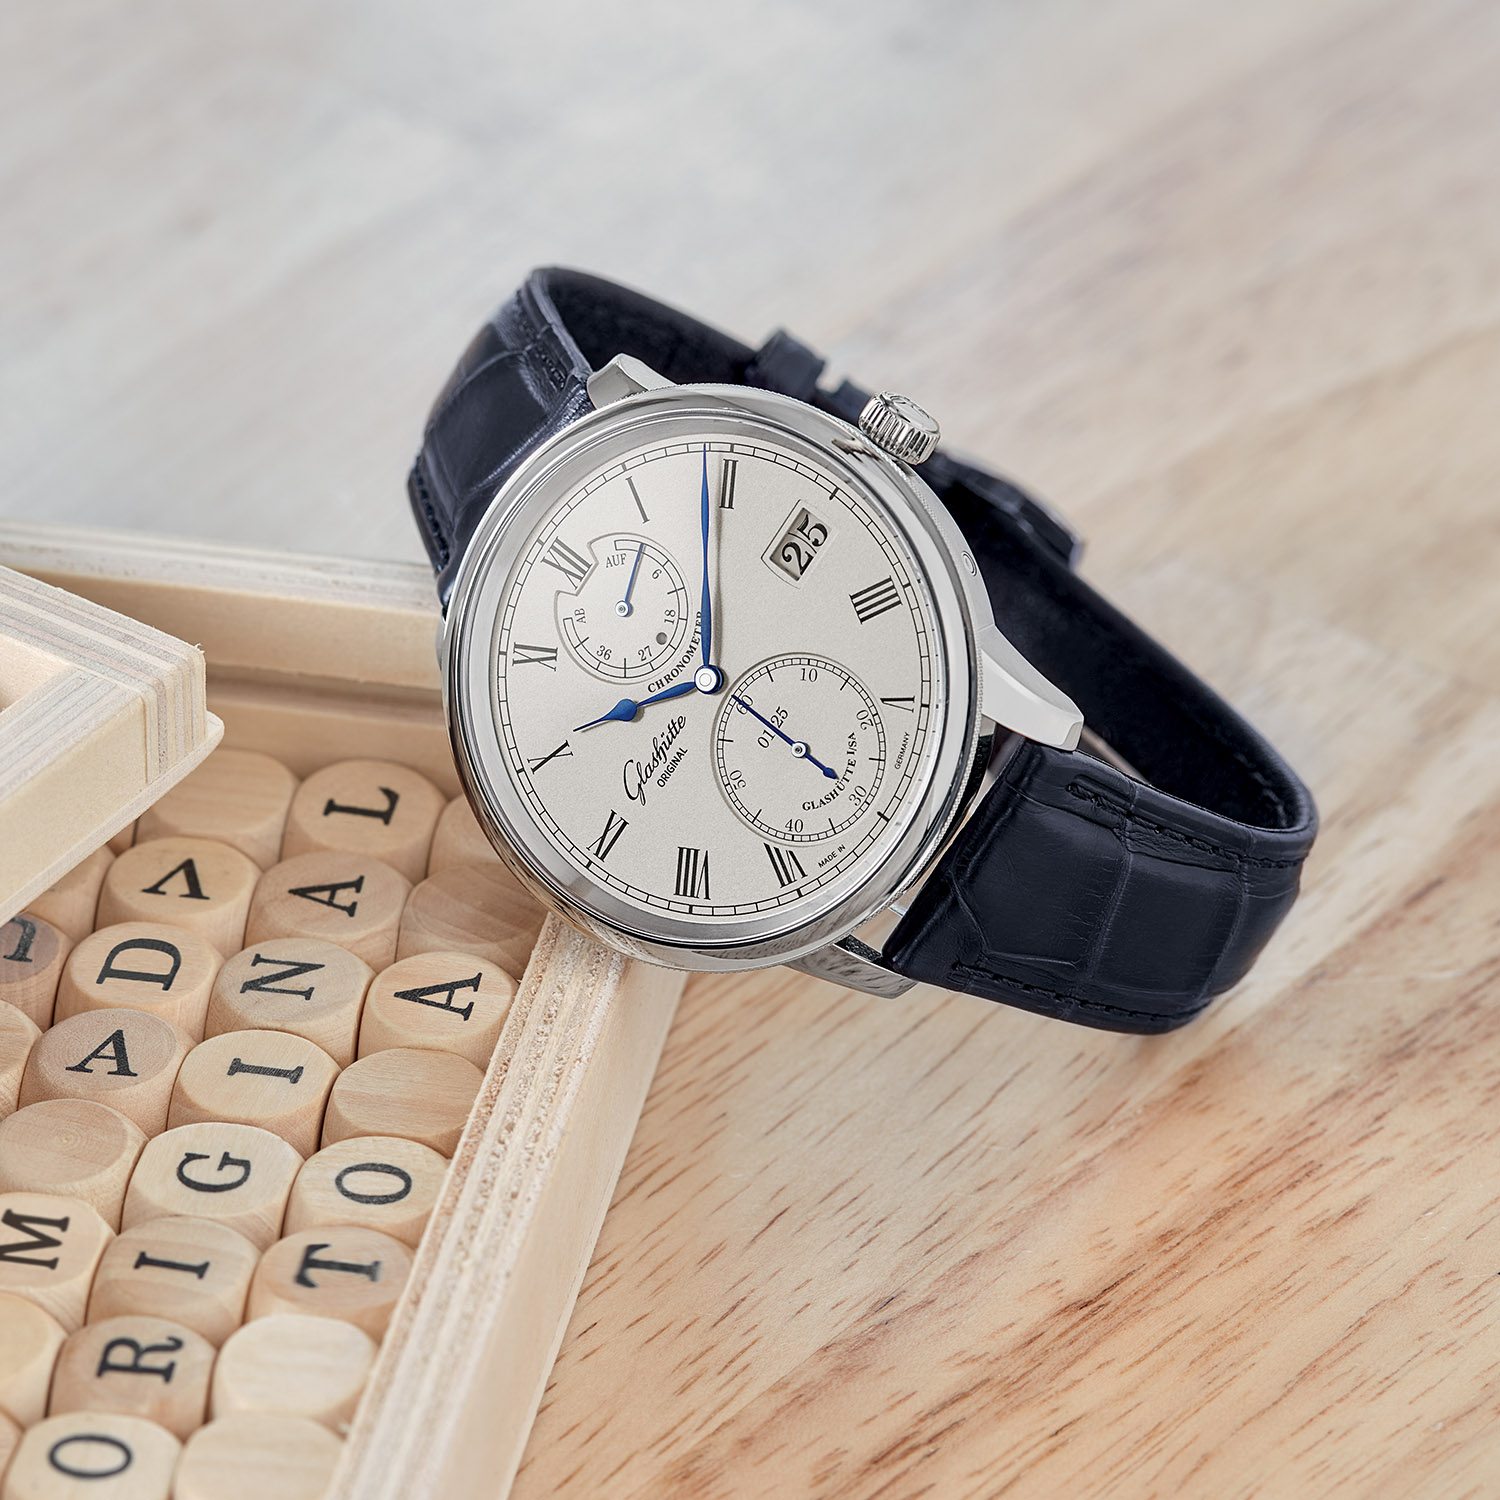 2020 Glashütte Original Senator Chronometer Limited Edition